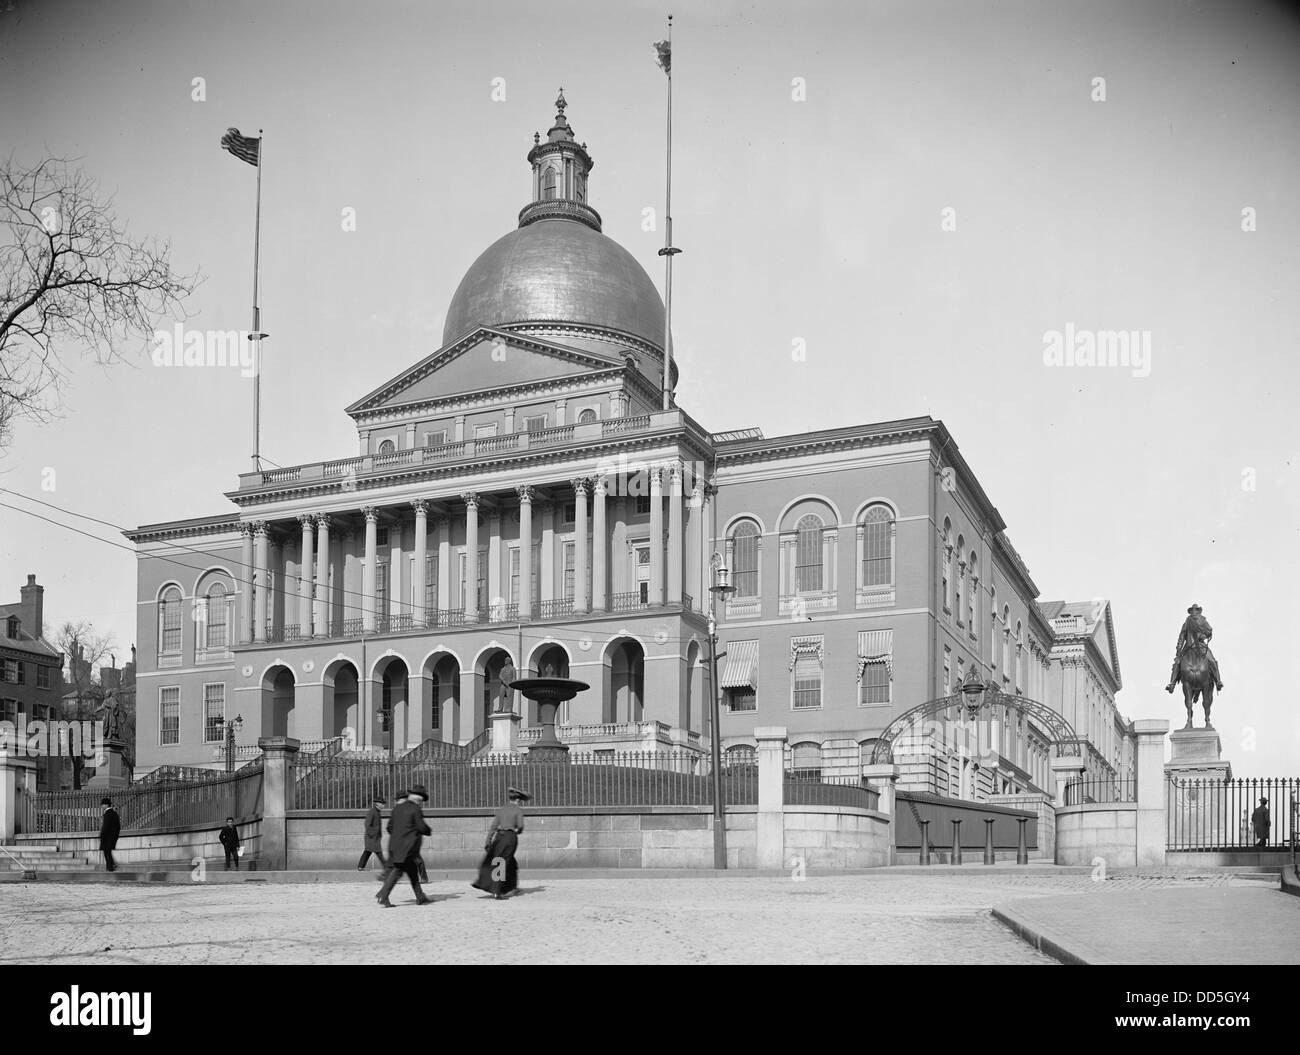 Massachusetts State House, Boston, ca. 1900 - Stock Image